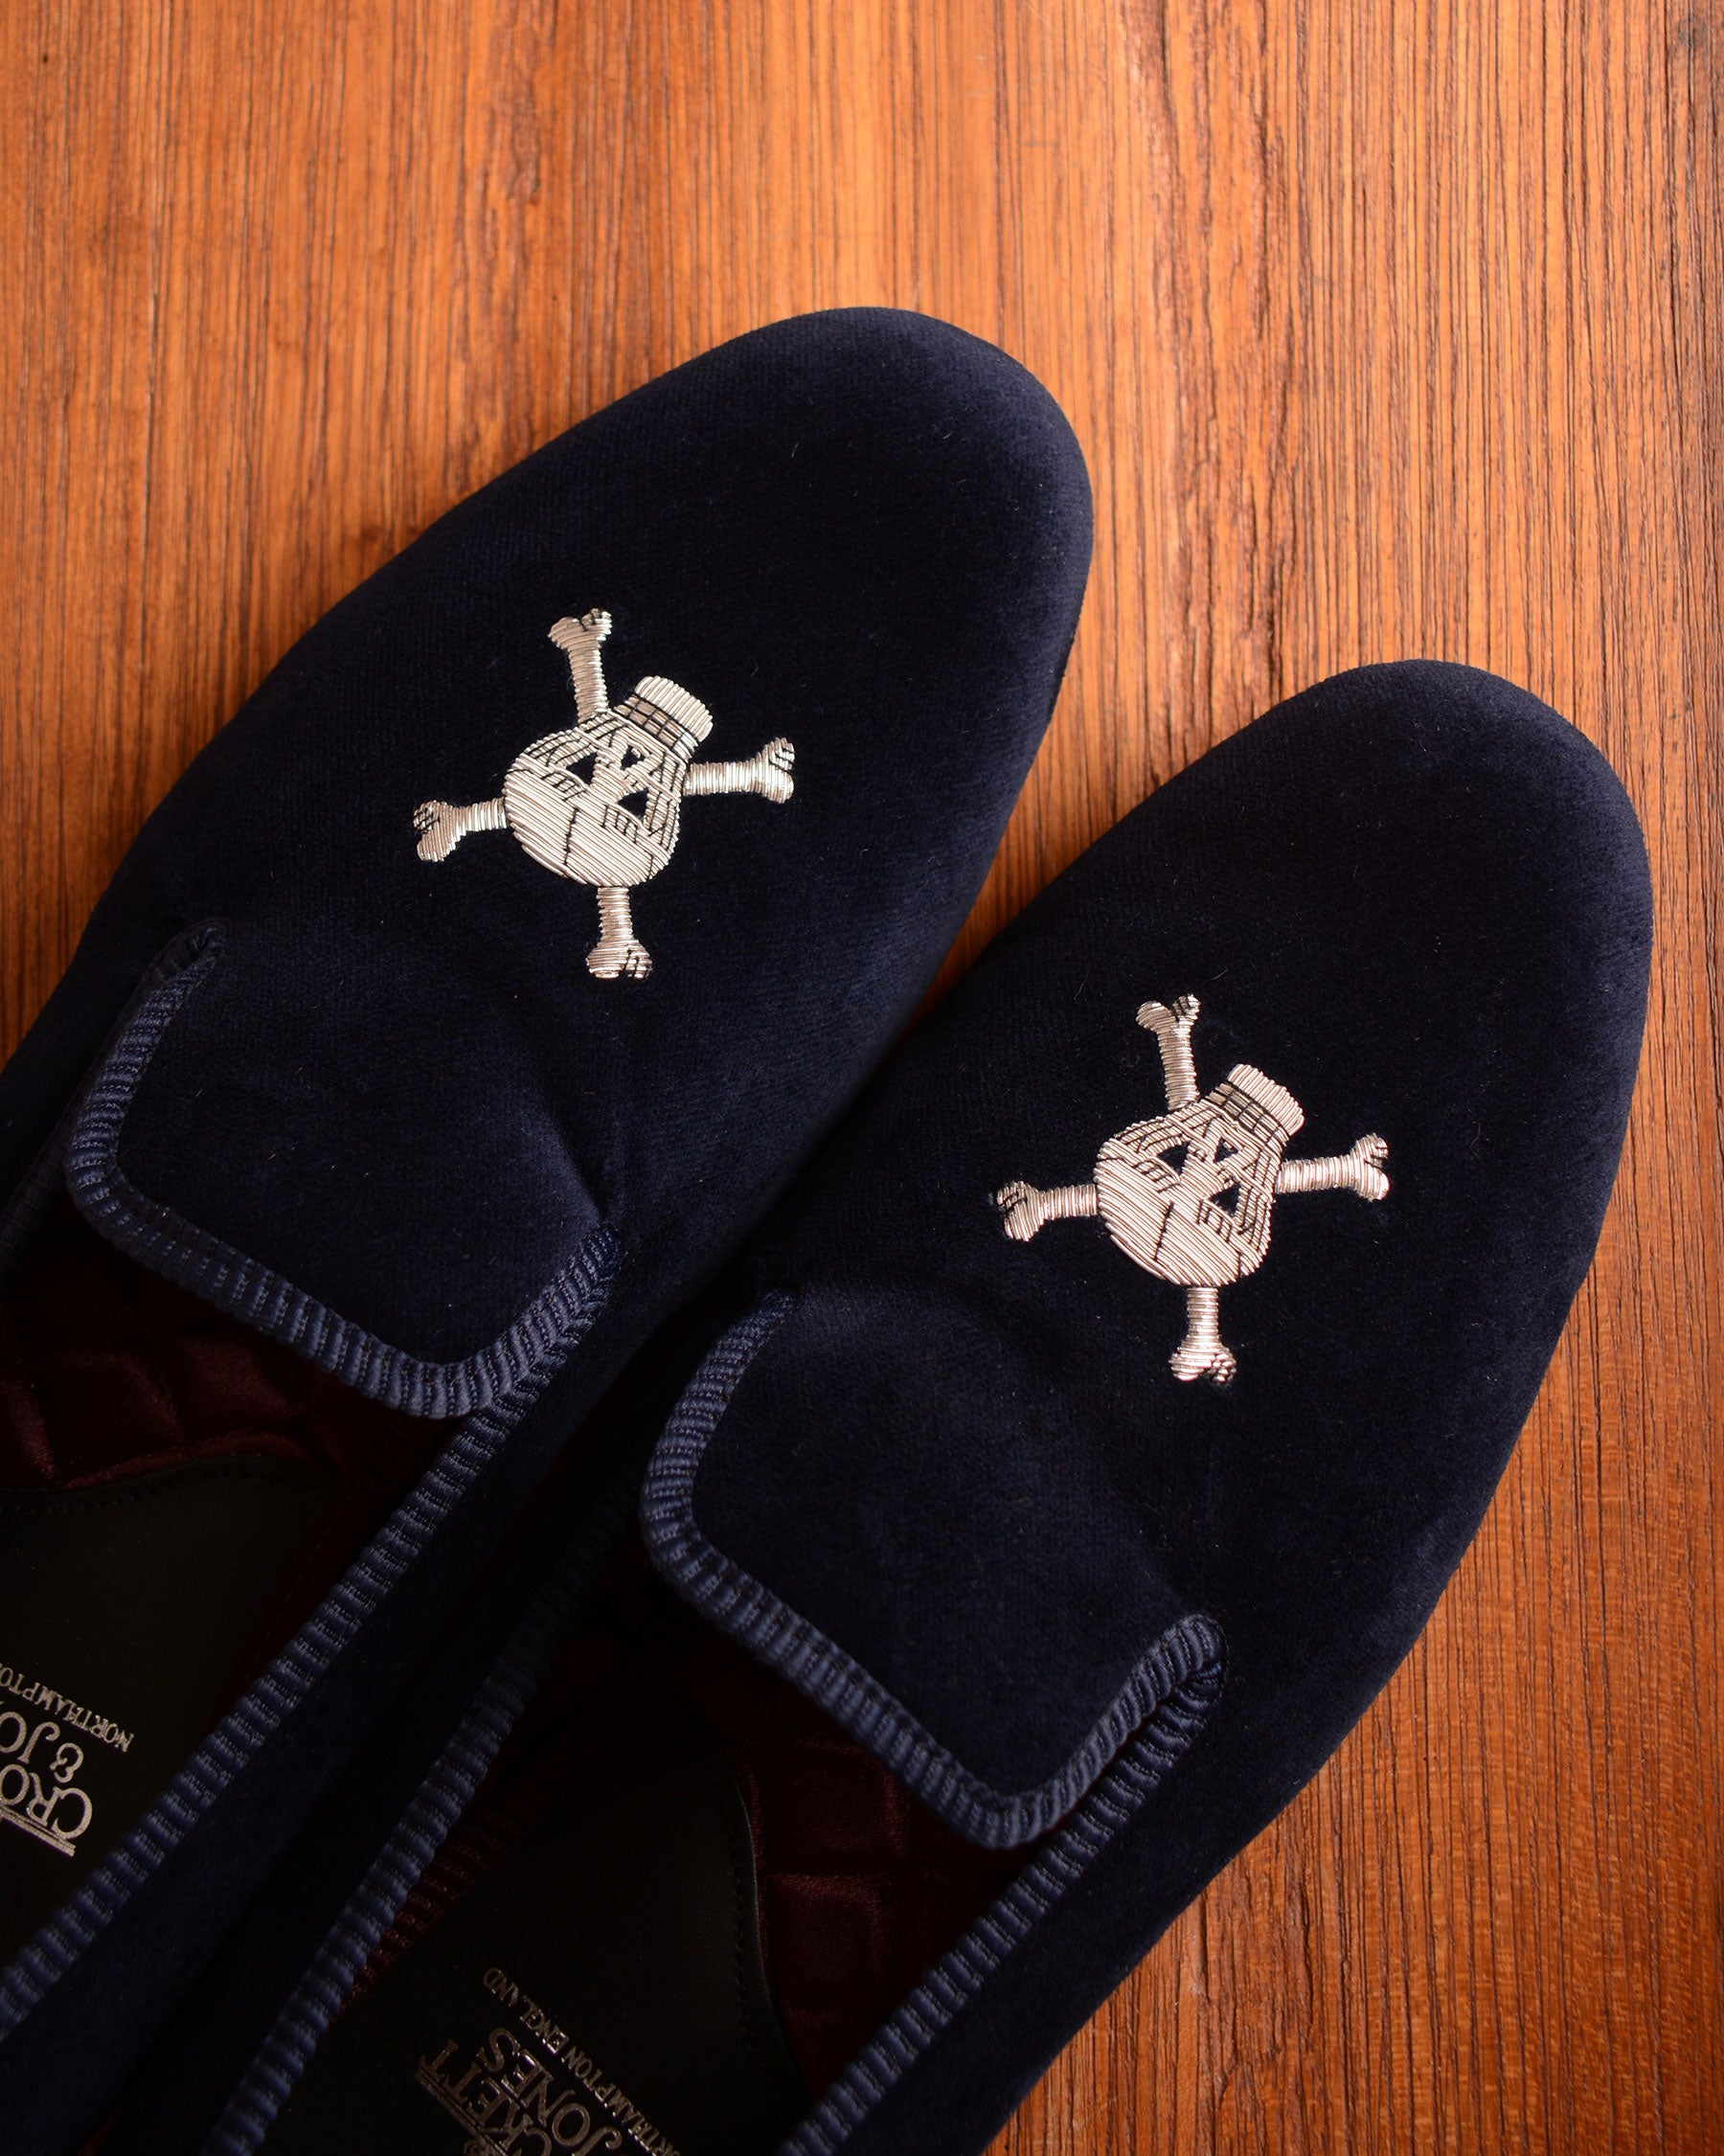 Crockett & Jones Slipper - Navy Skull